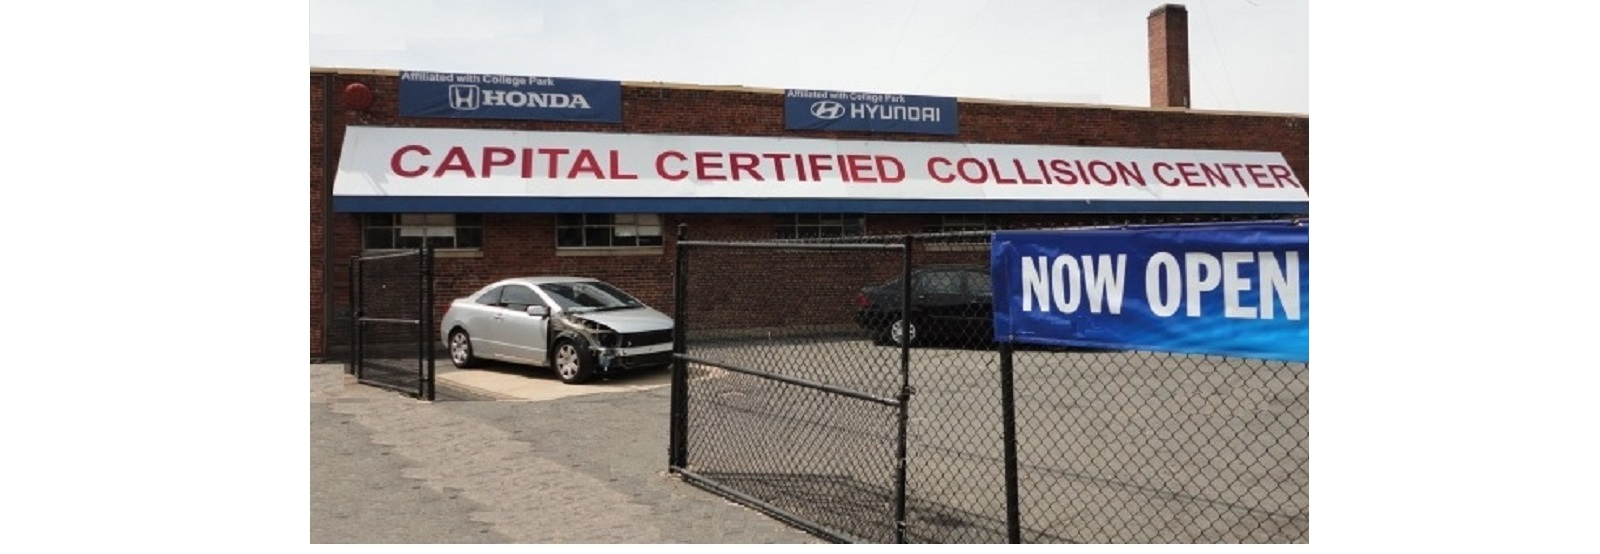 Capital Certified Collision Center